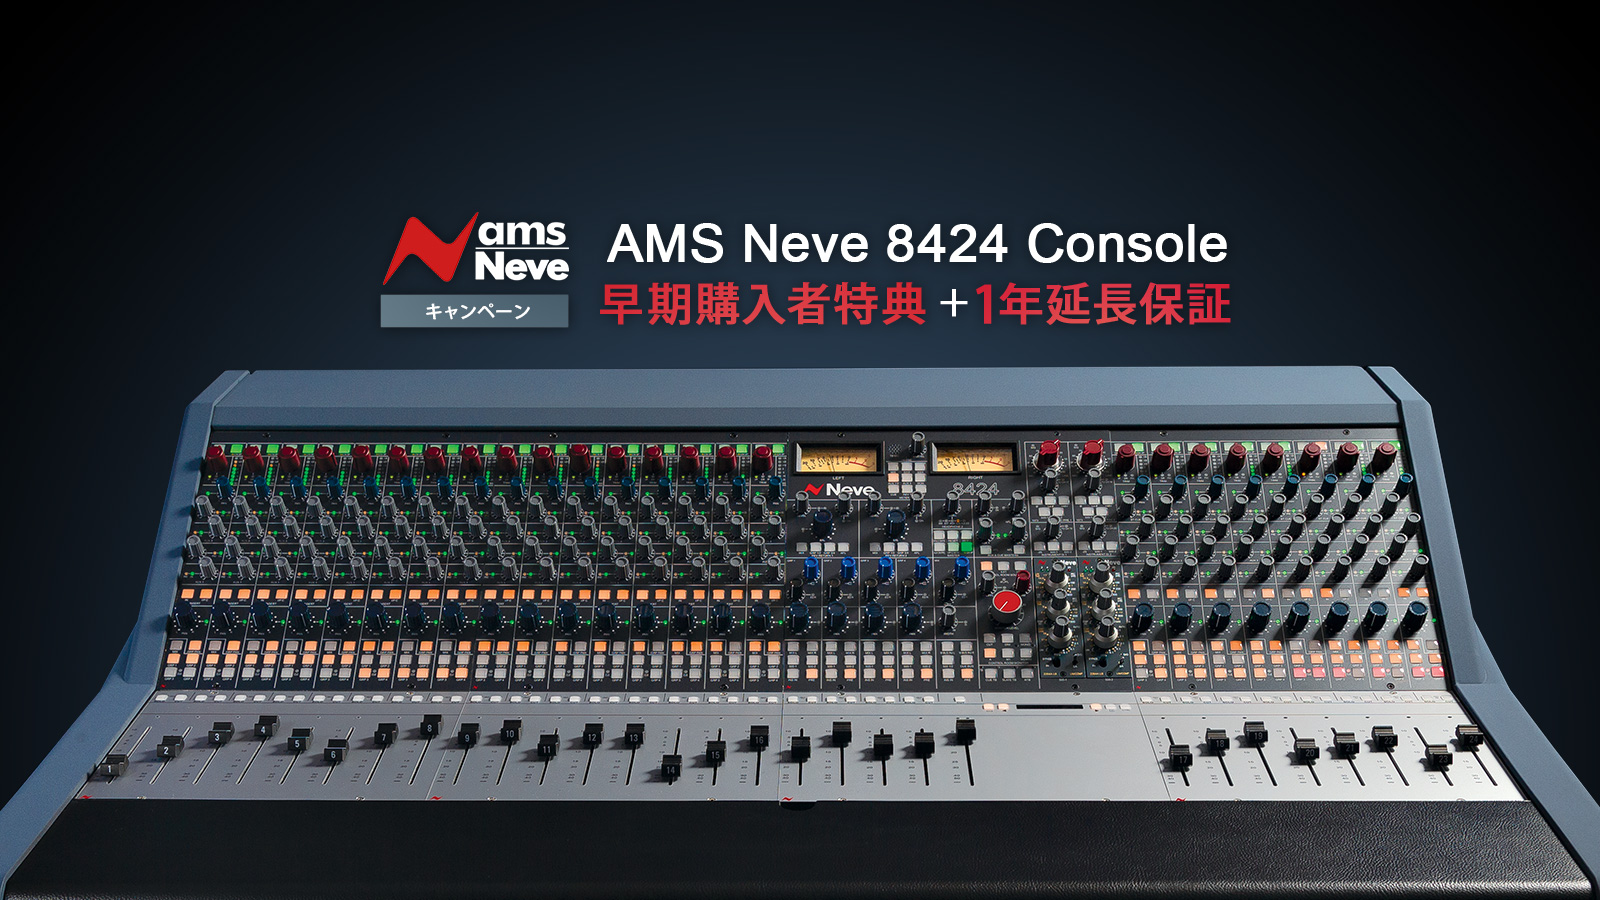 AMS Neve 8424 Console 早期購入者特典 +1年延長保証キャンペーン